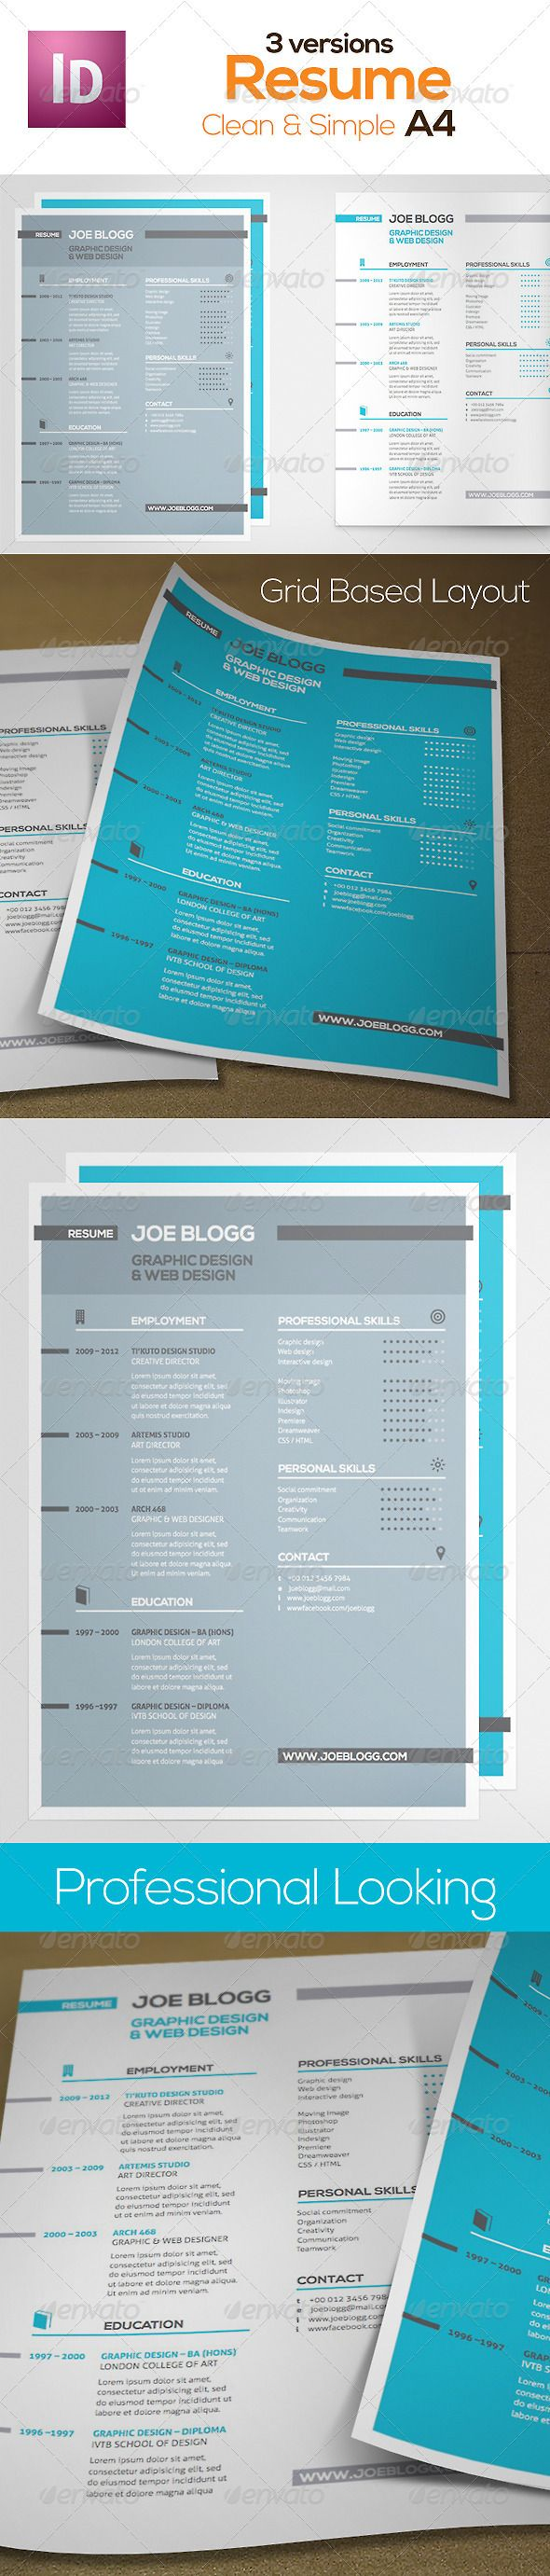 87 best images about BUSINESS Resume on PinterestCool resumes